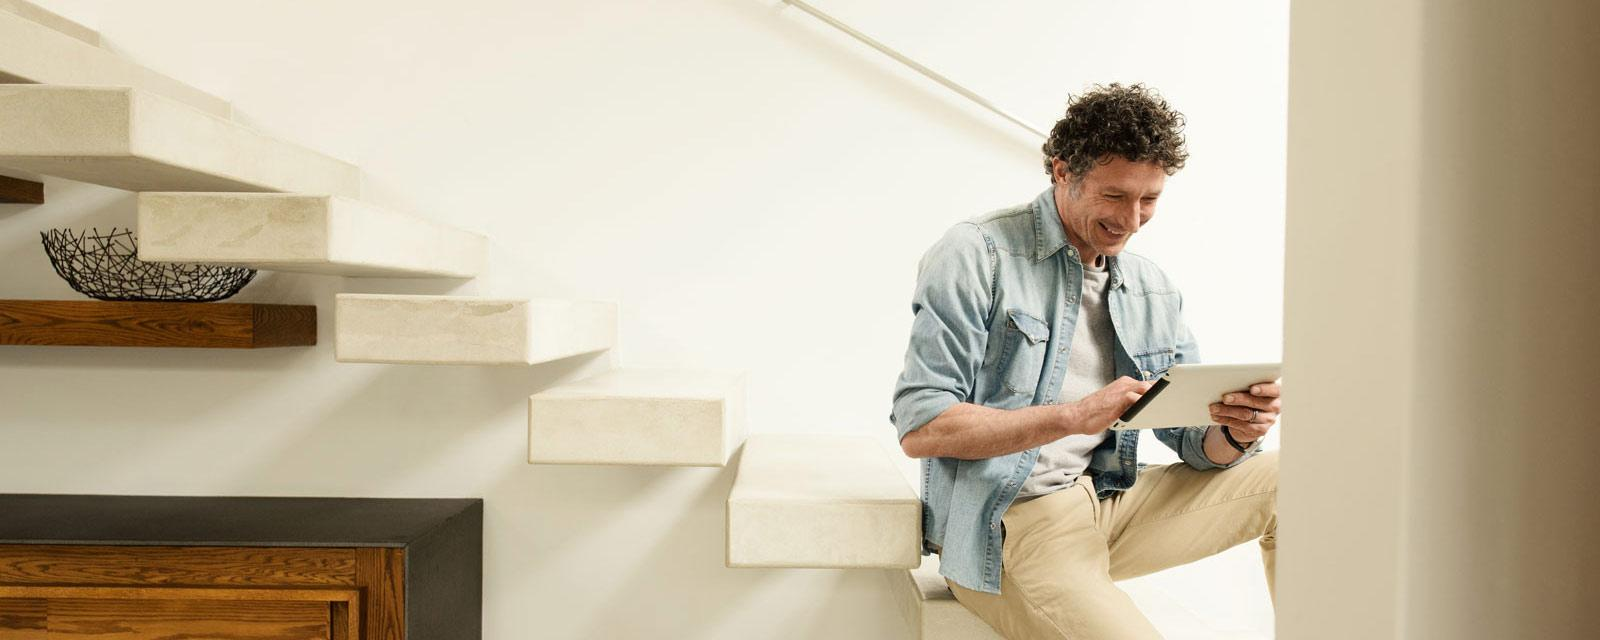 man-sitting-on-stairs-image